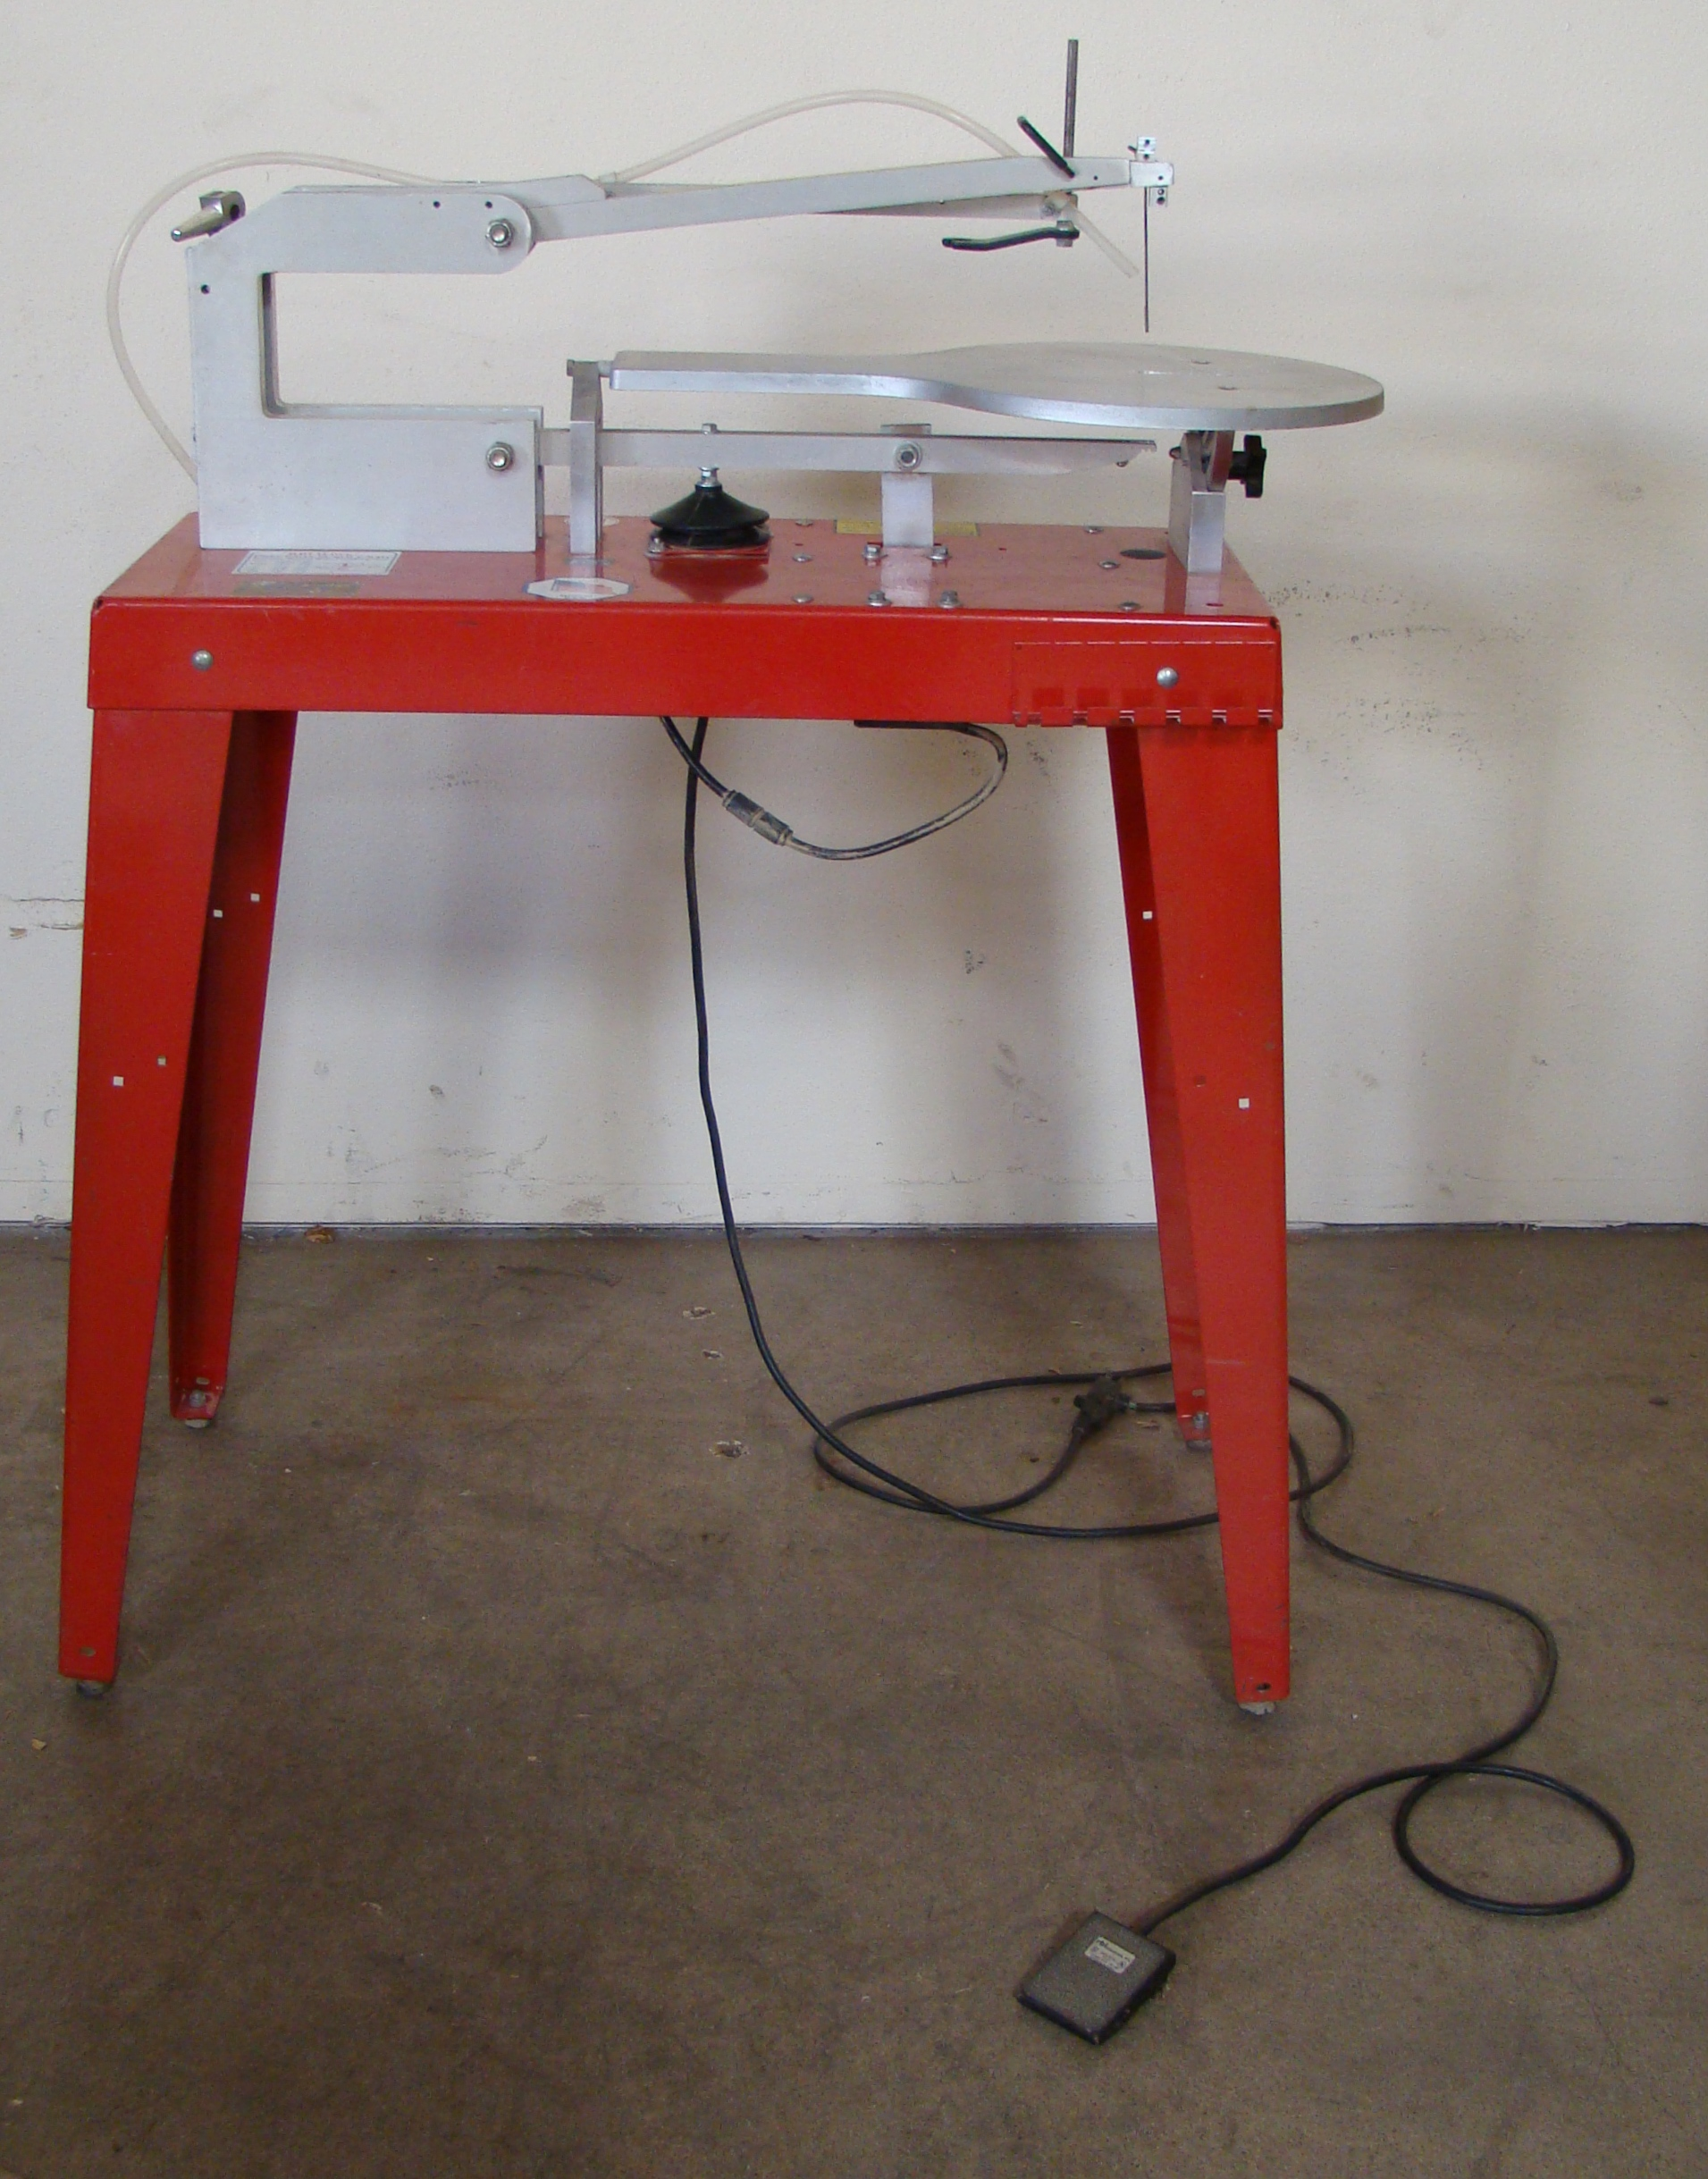 RBI Hawk Precision Scroll Saw Model 226VS 115 Volt